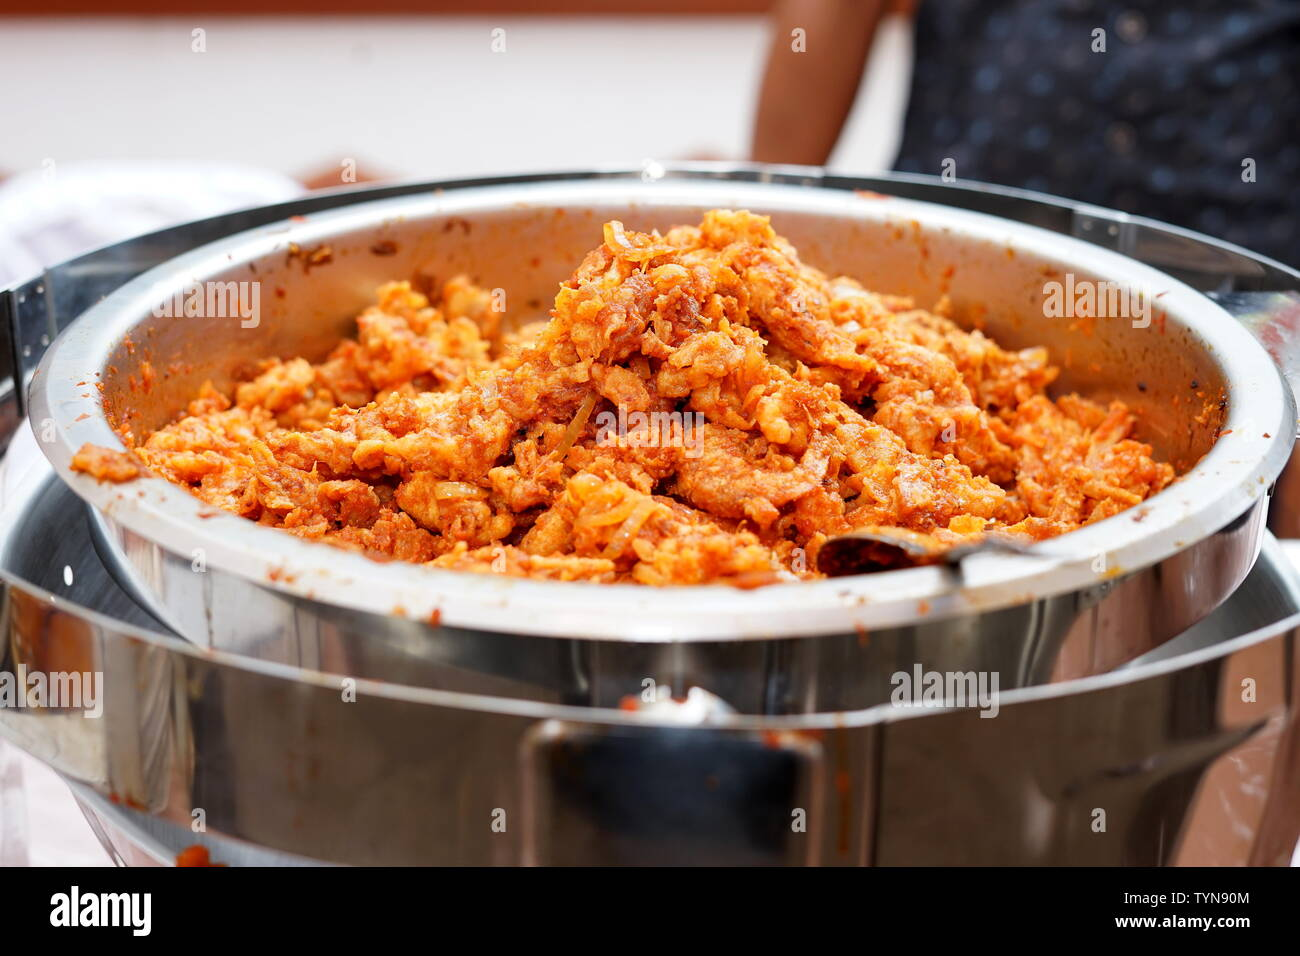 Fried breaded shrimp with Spicy sauces on the buffet - Stock Image